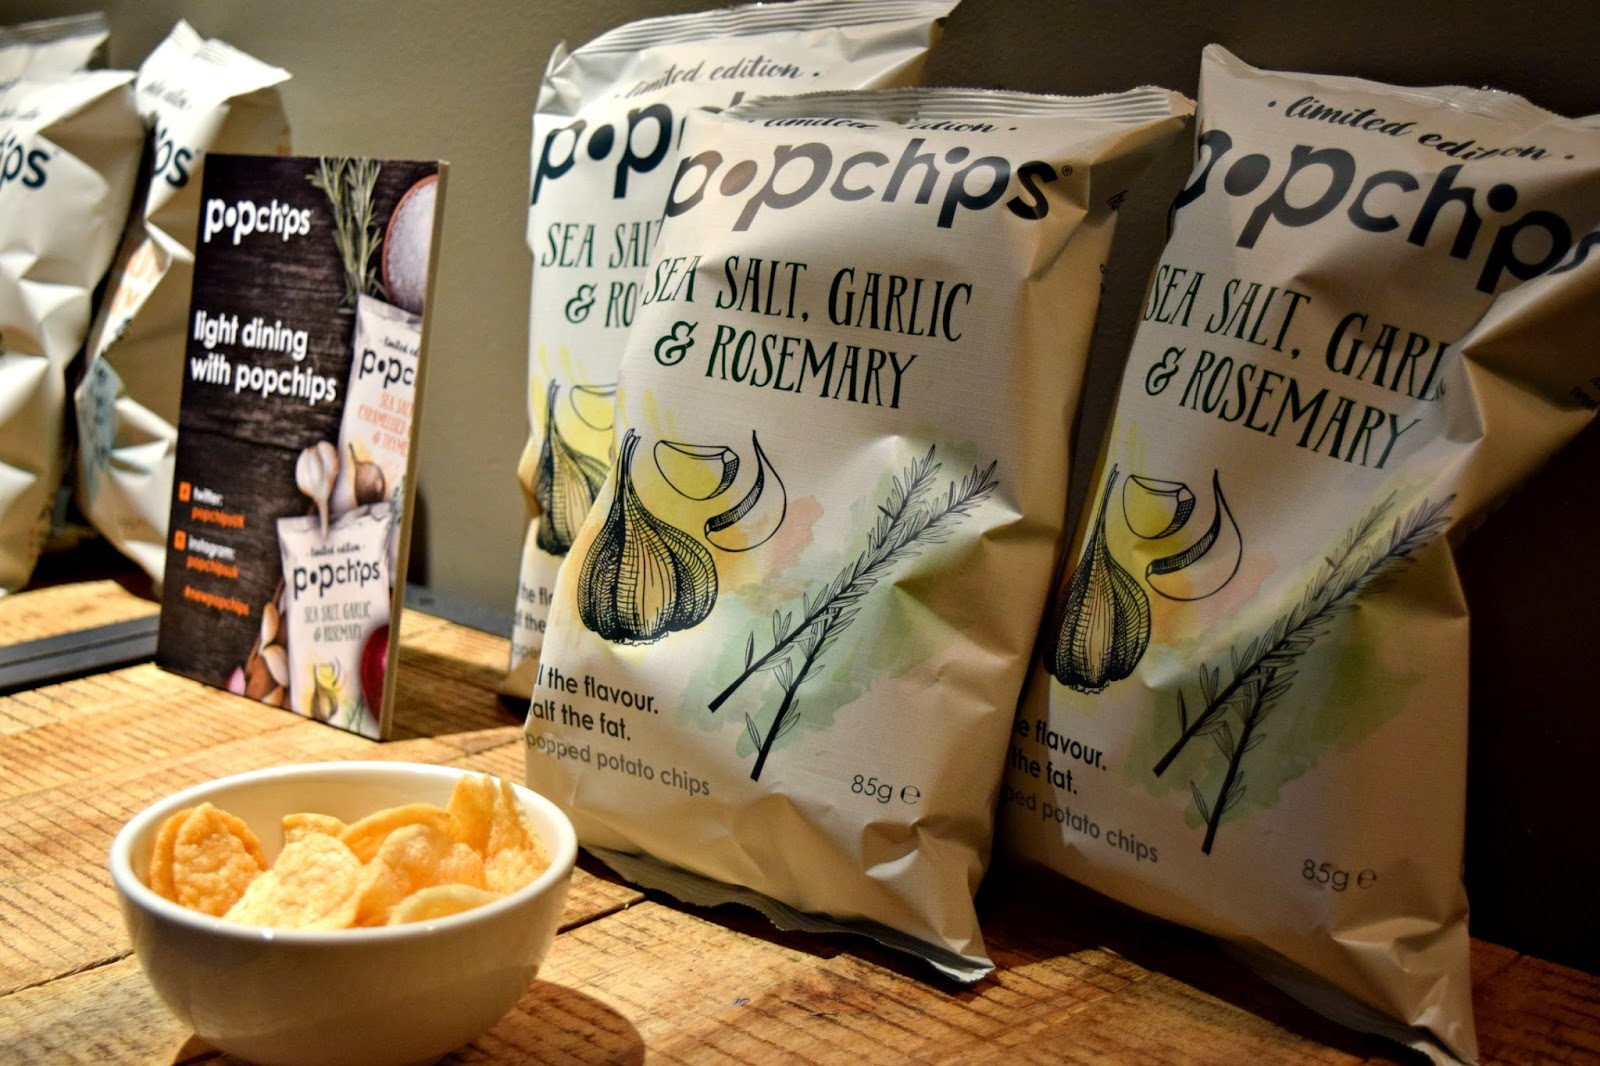 Popchips limited edition range